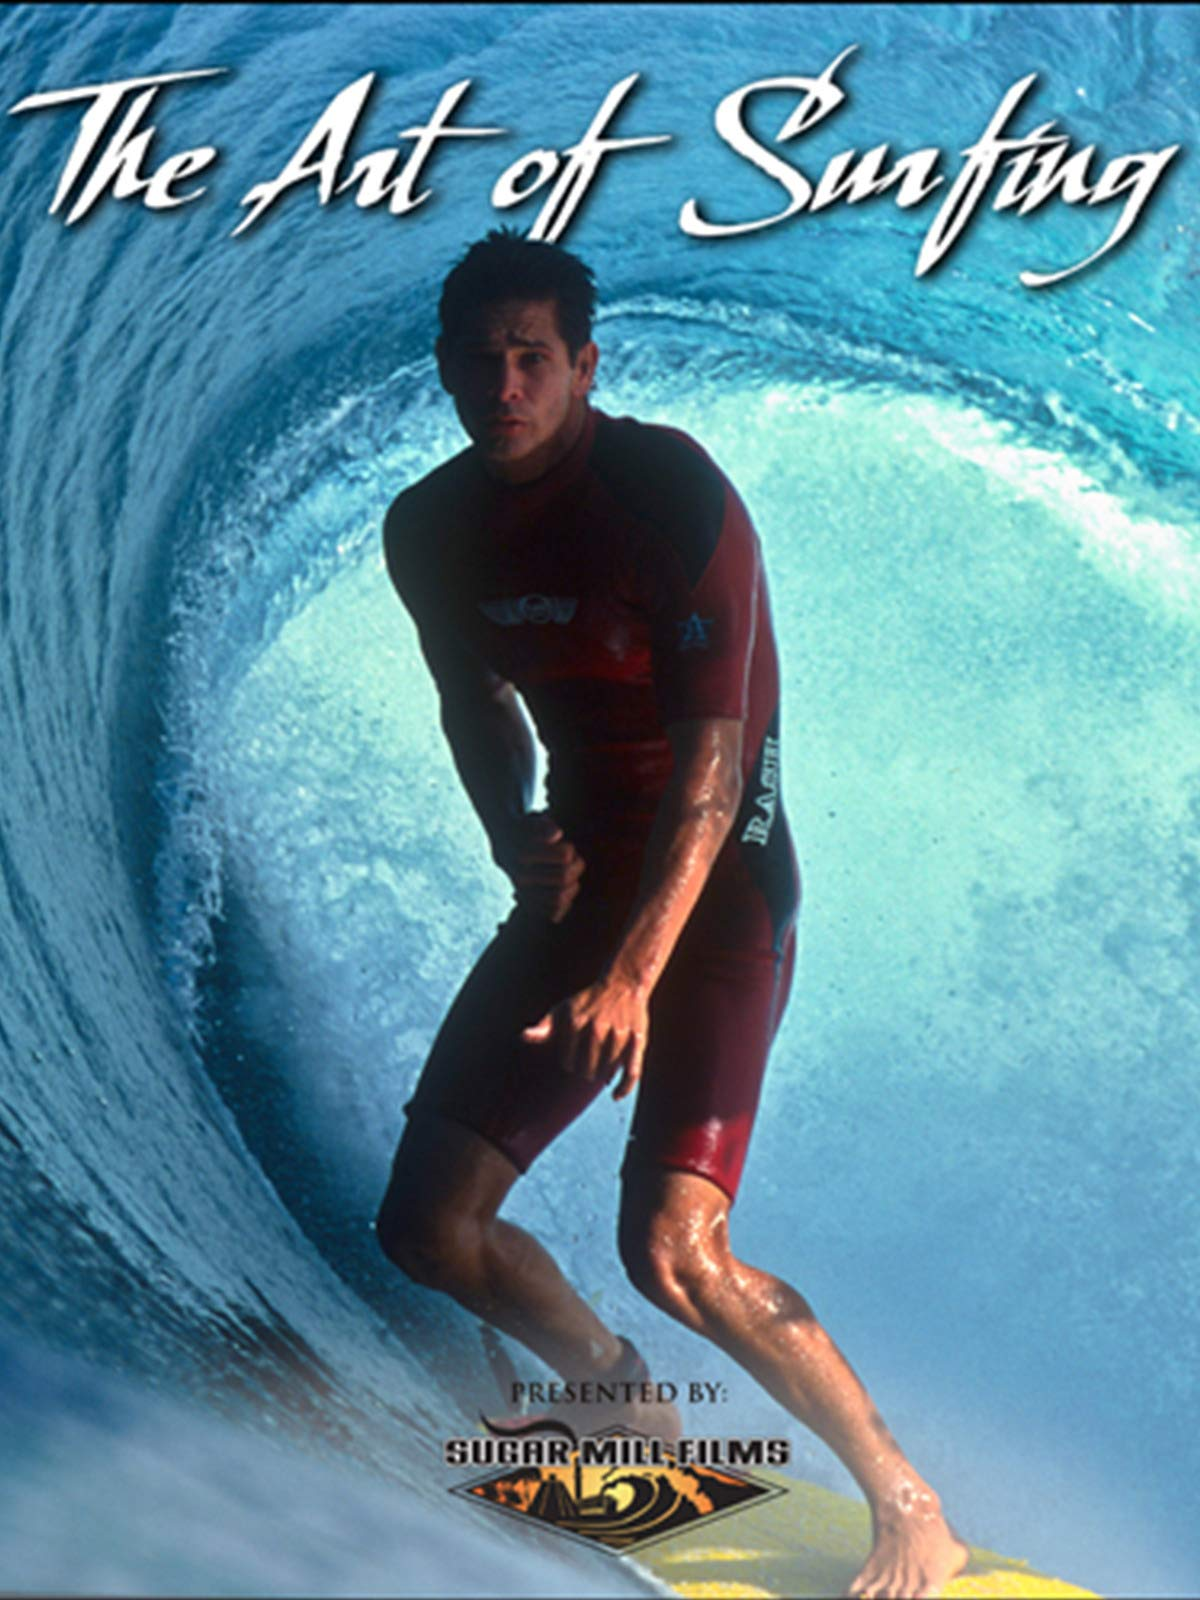 The Art of Surfing